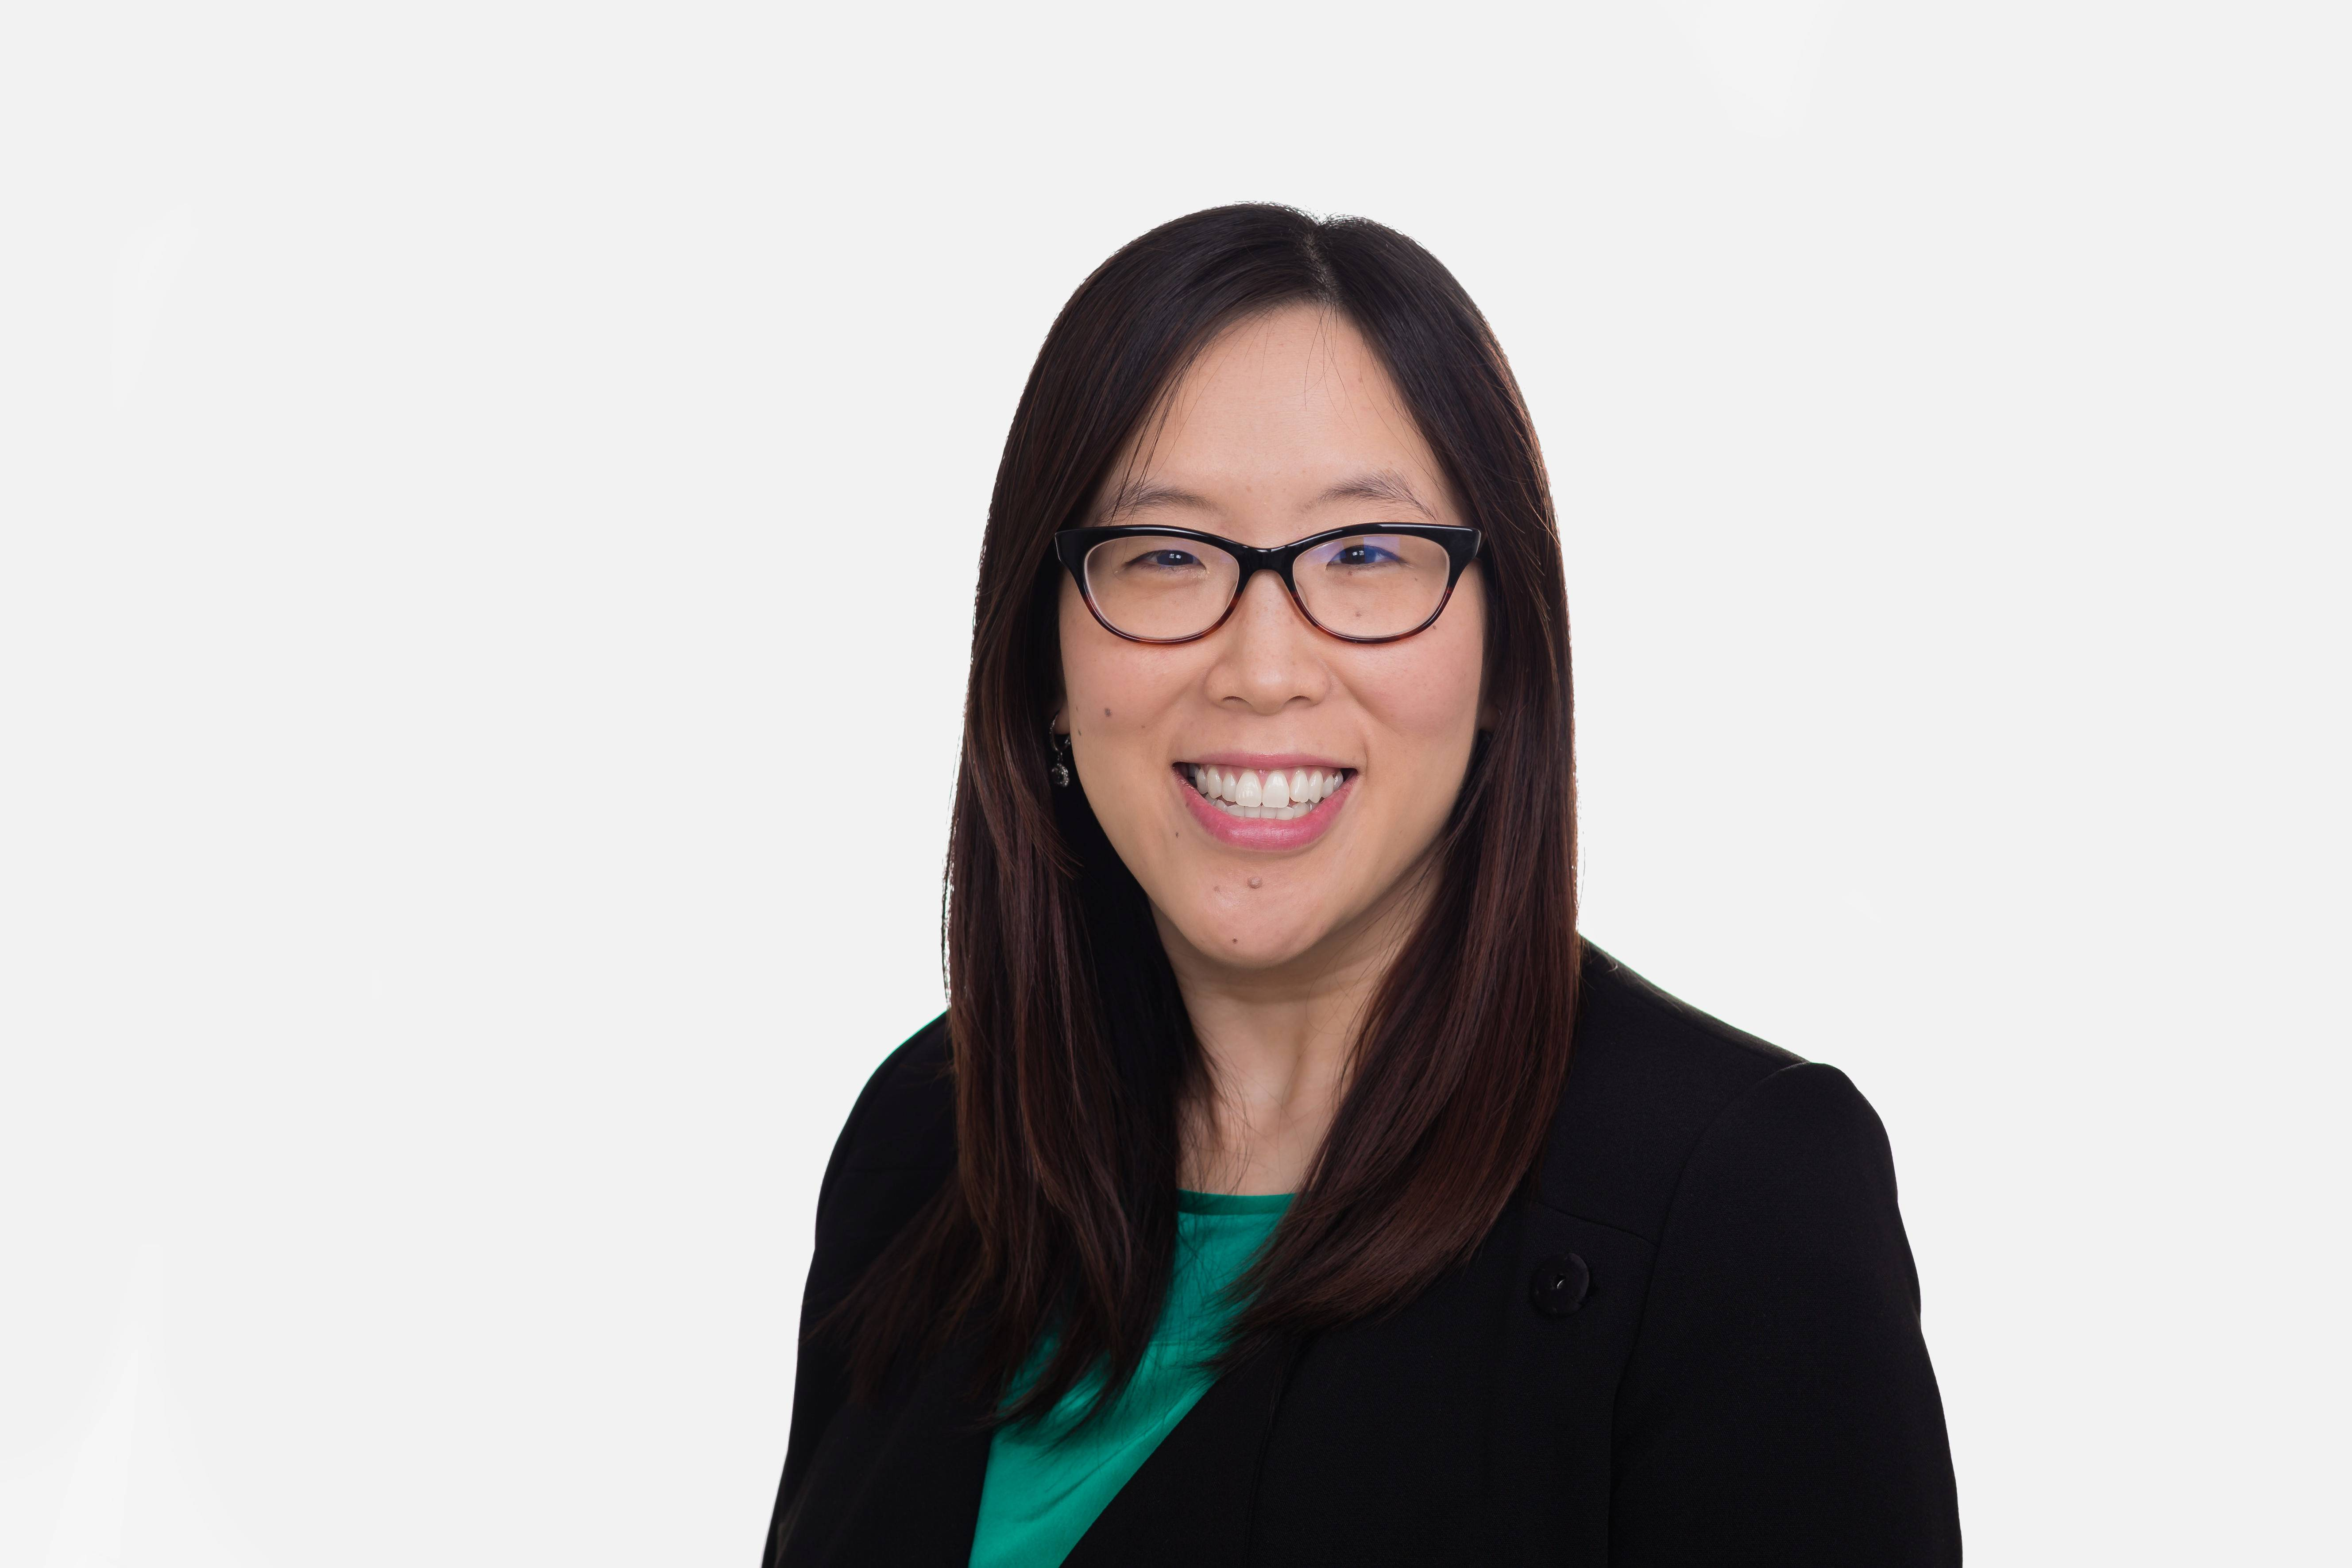 PCRM's physician and fertility doctor, Dr. Diane Ahn